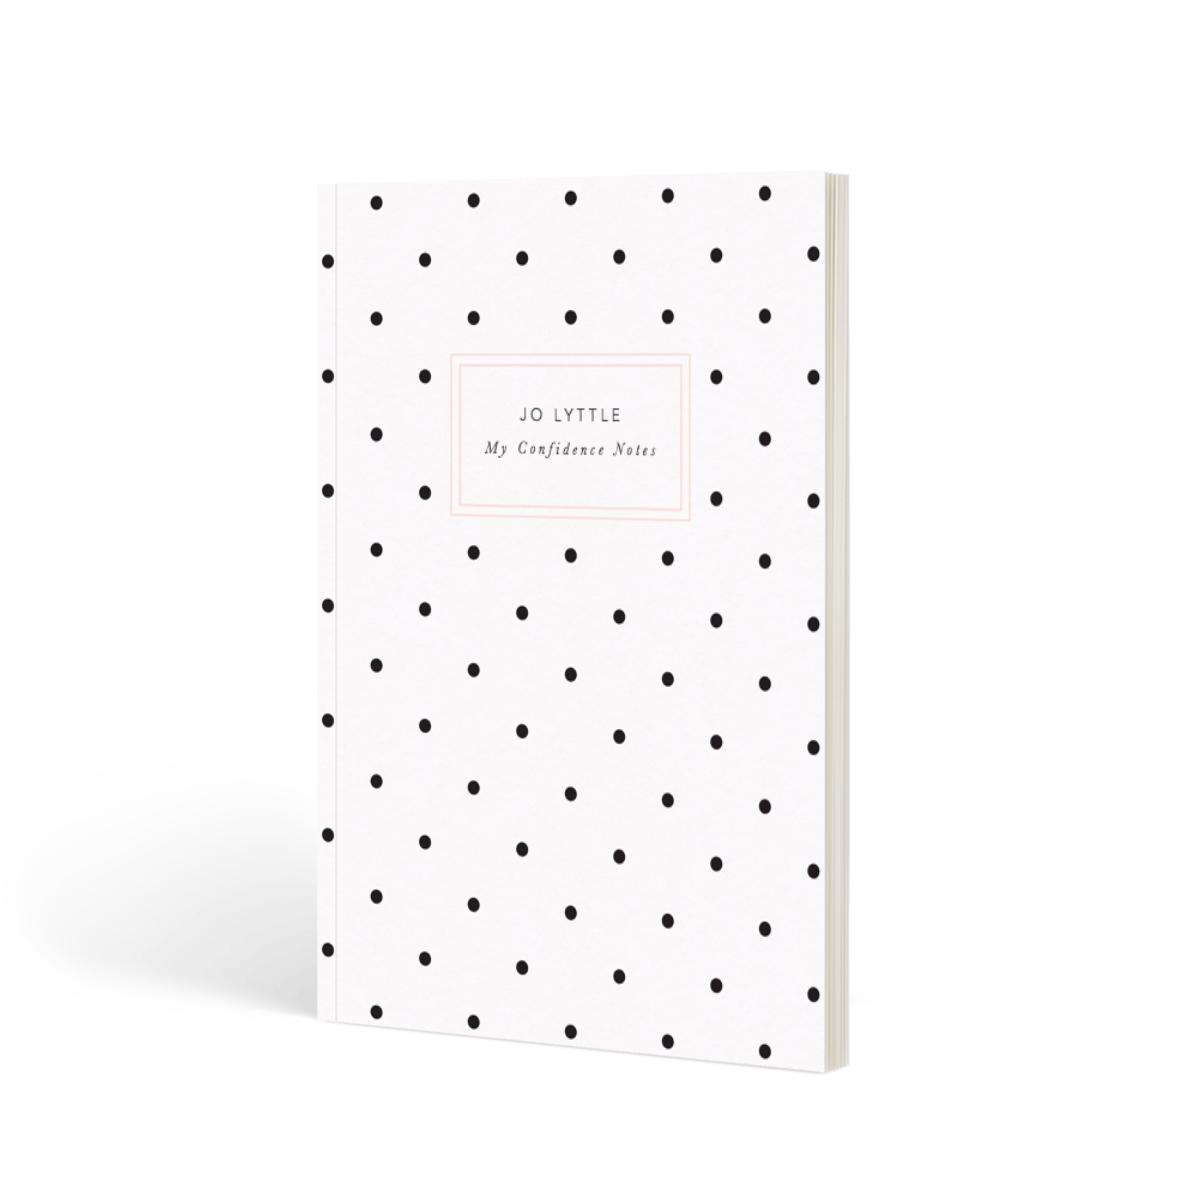 Https%3a%2f%2fwww.papier.com%2fproduct image%2f19875%2f6%2fpolka dots confidence notes 5088 front 1487858414.png?ixlib=rb 1.1